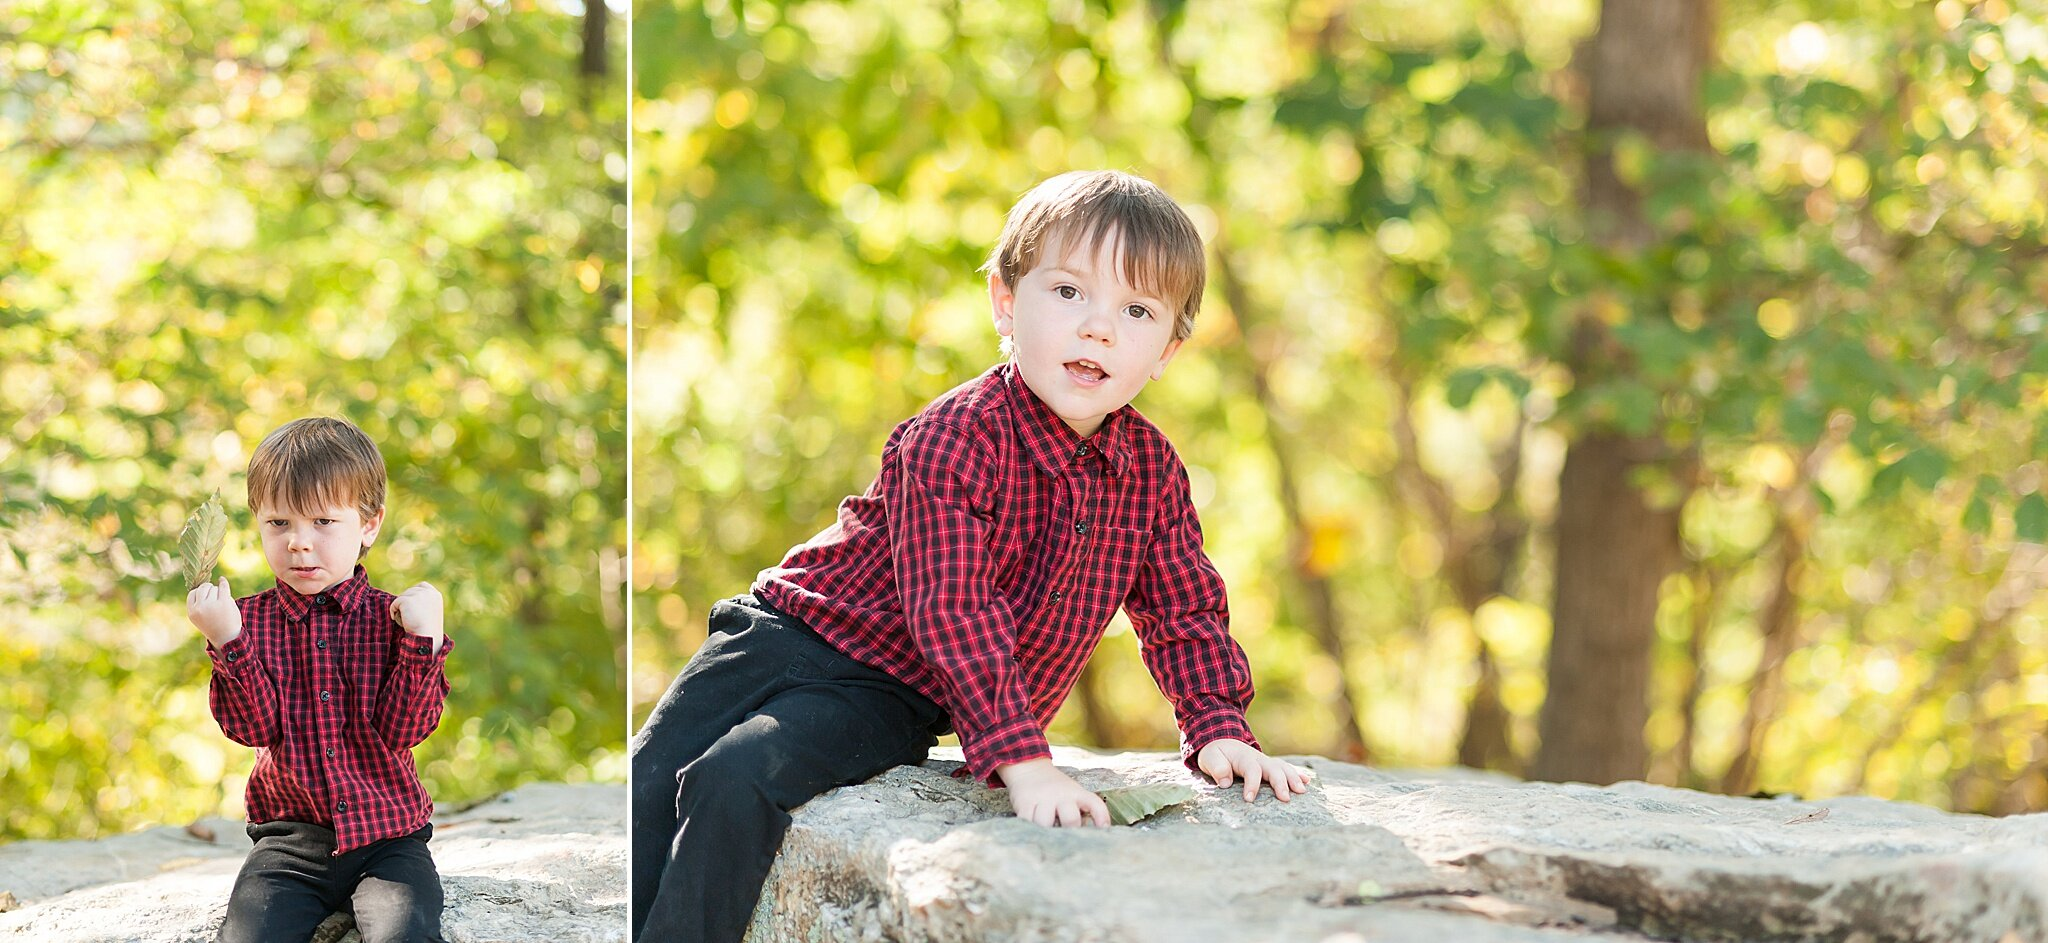 Wendy Zook Photography | Frederick MD family photographer, Maryland family photographer, MD family photographer, Frederick family photos, mommy and me session, lakefront family photos, Maryland family session, family session with Wendy Zook Photography